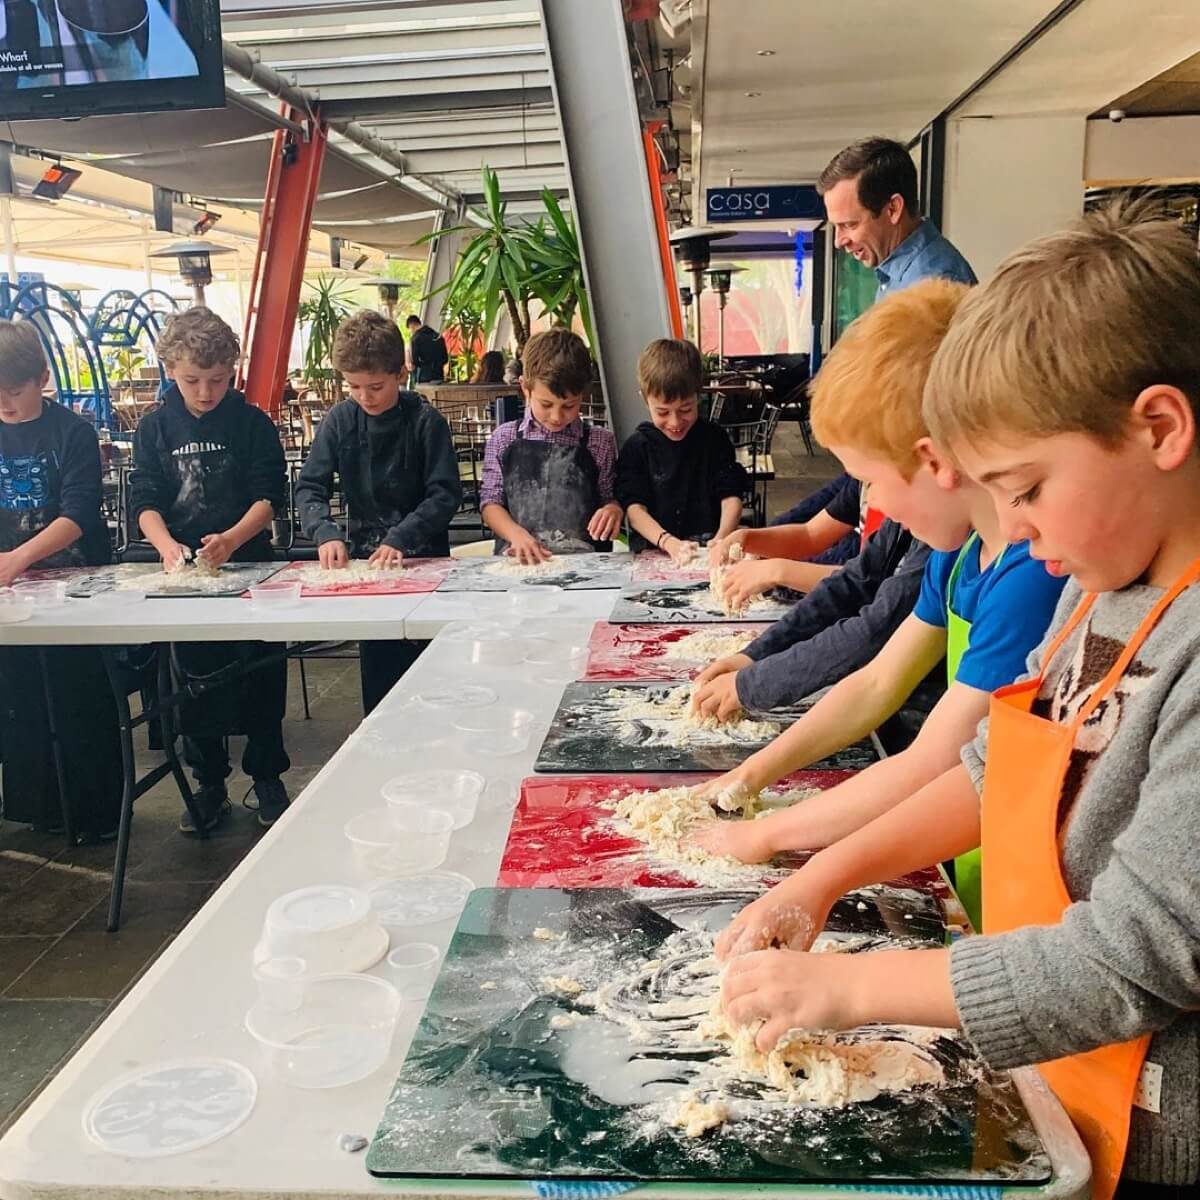 Kids Pizza Making Party. Watch them have so much fun